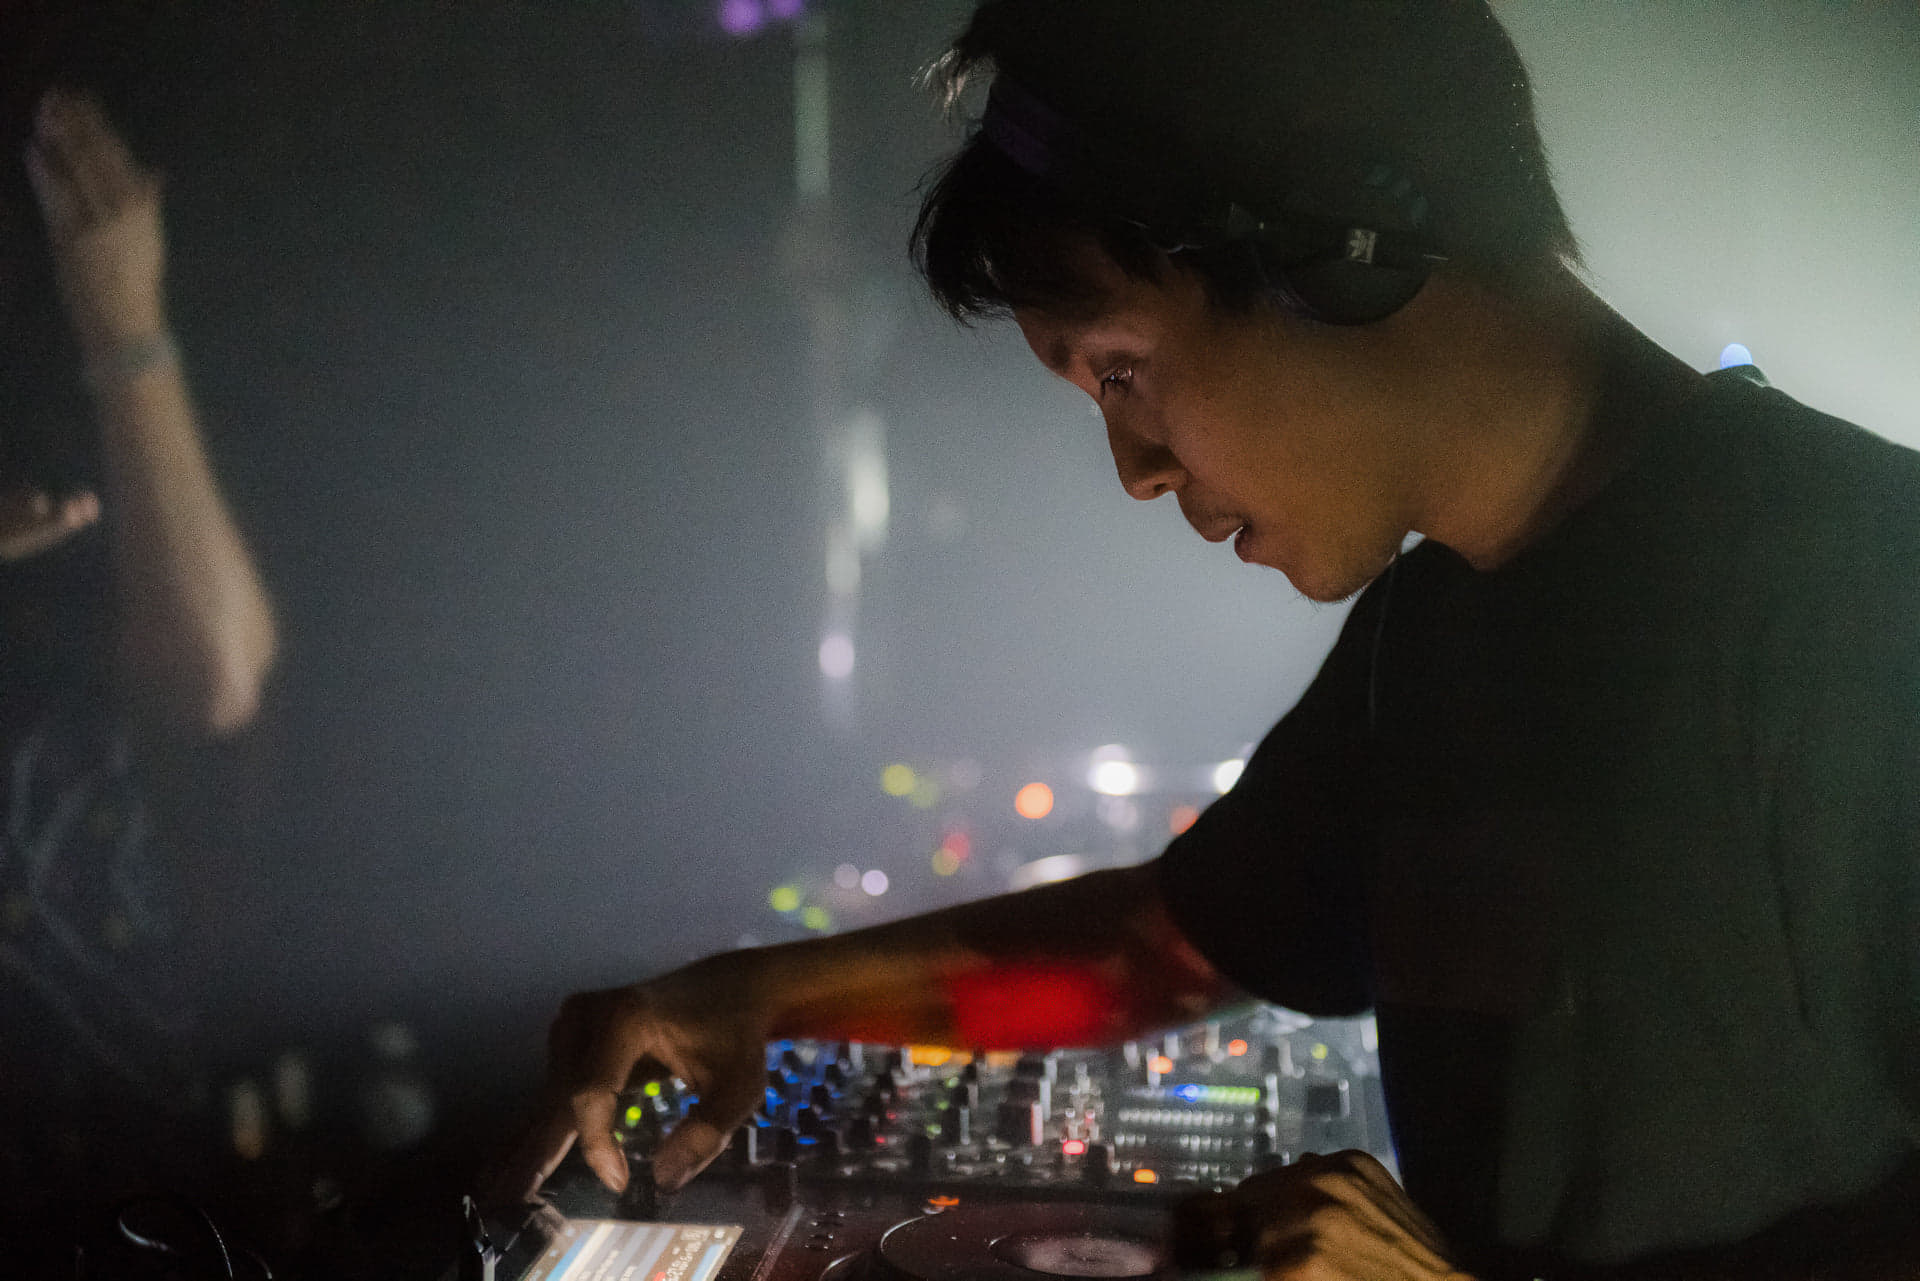 DJ Korn fights for Bangkok's right to party - Pushing forward Bangkok nightlife, amid curfews and crackdowns.